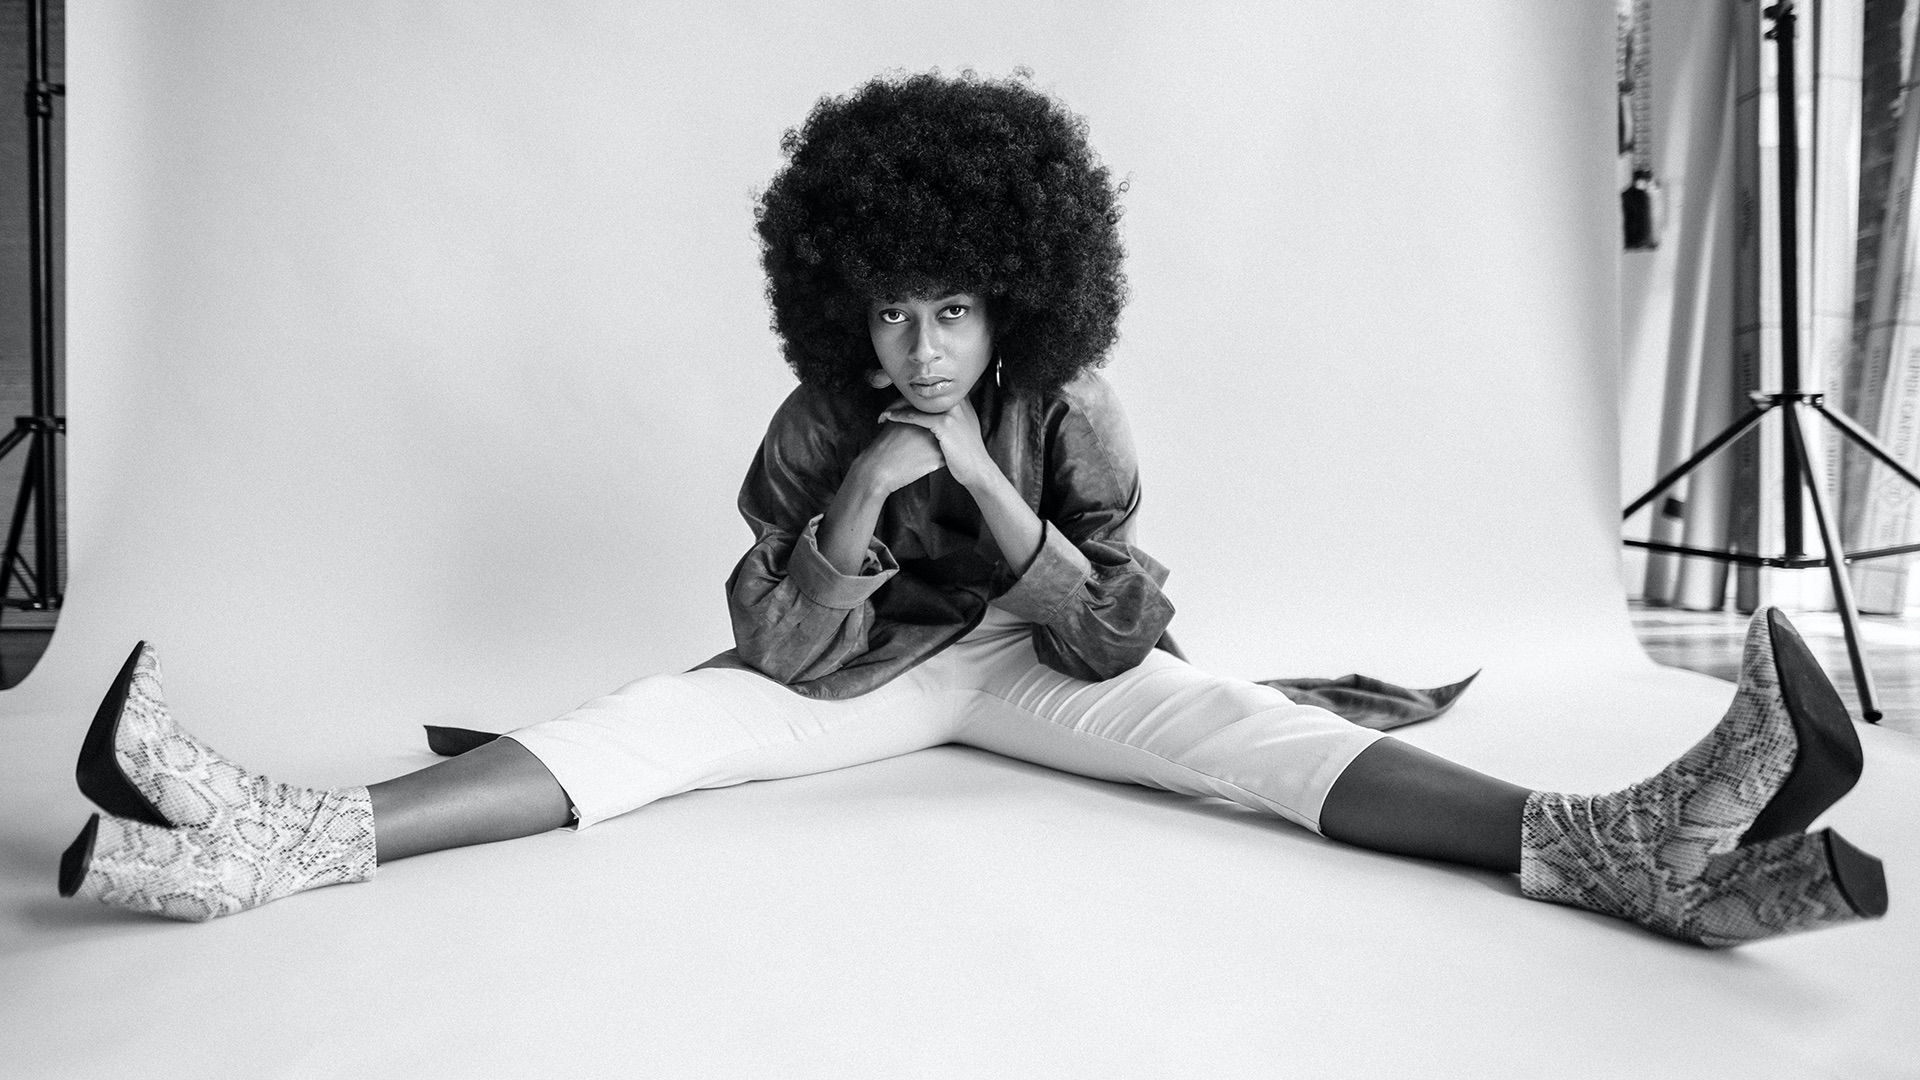 500px celebrates 12 photographers for Black History Month